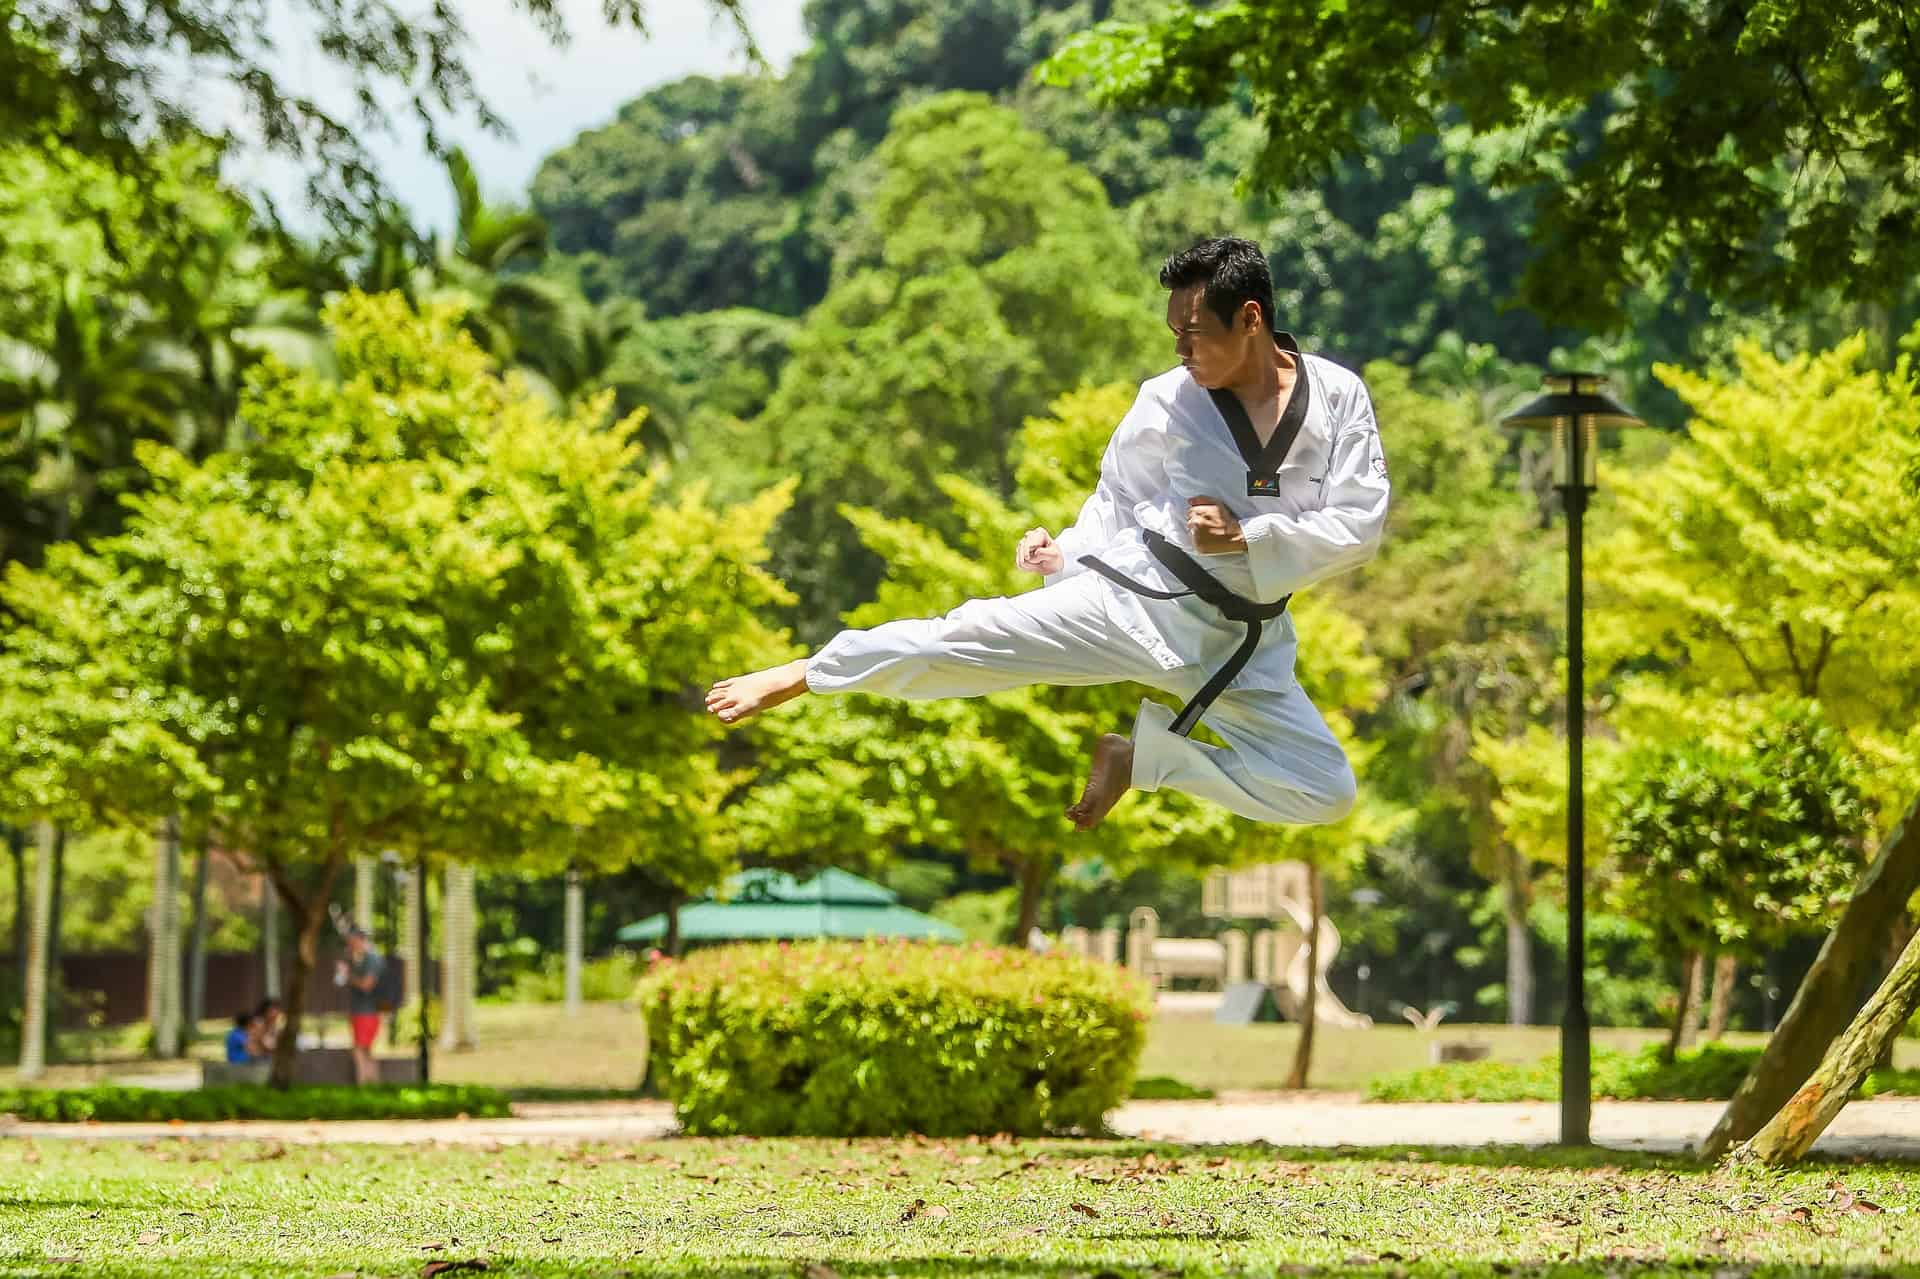 a man do a fly-kick move